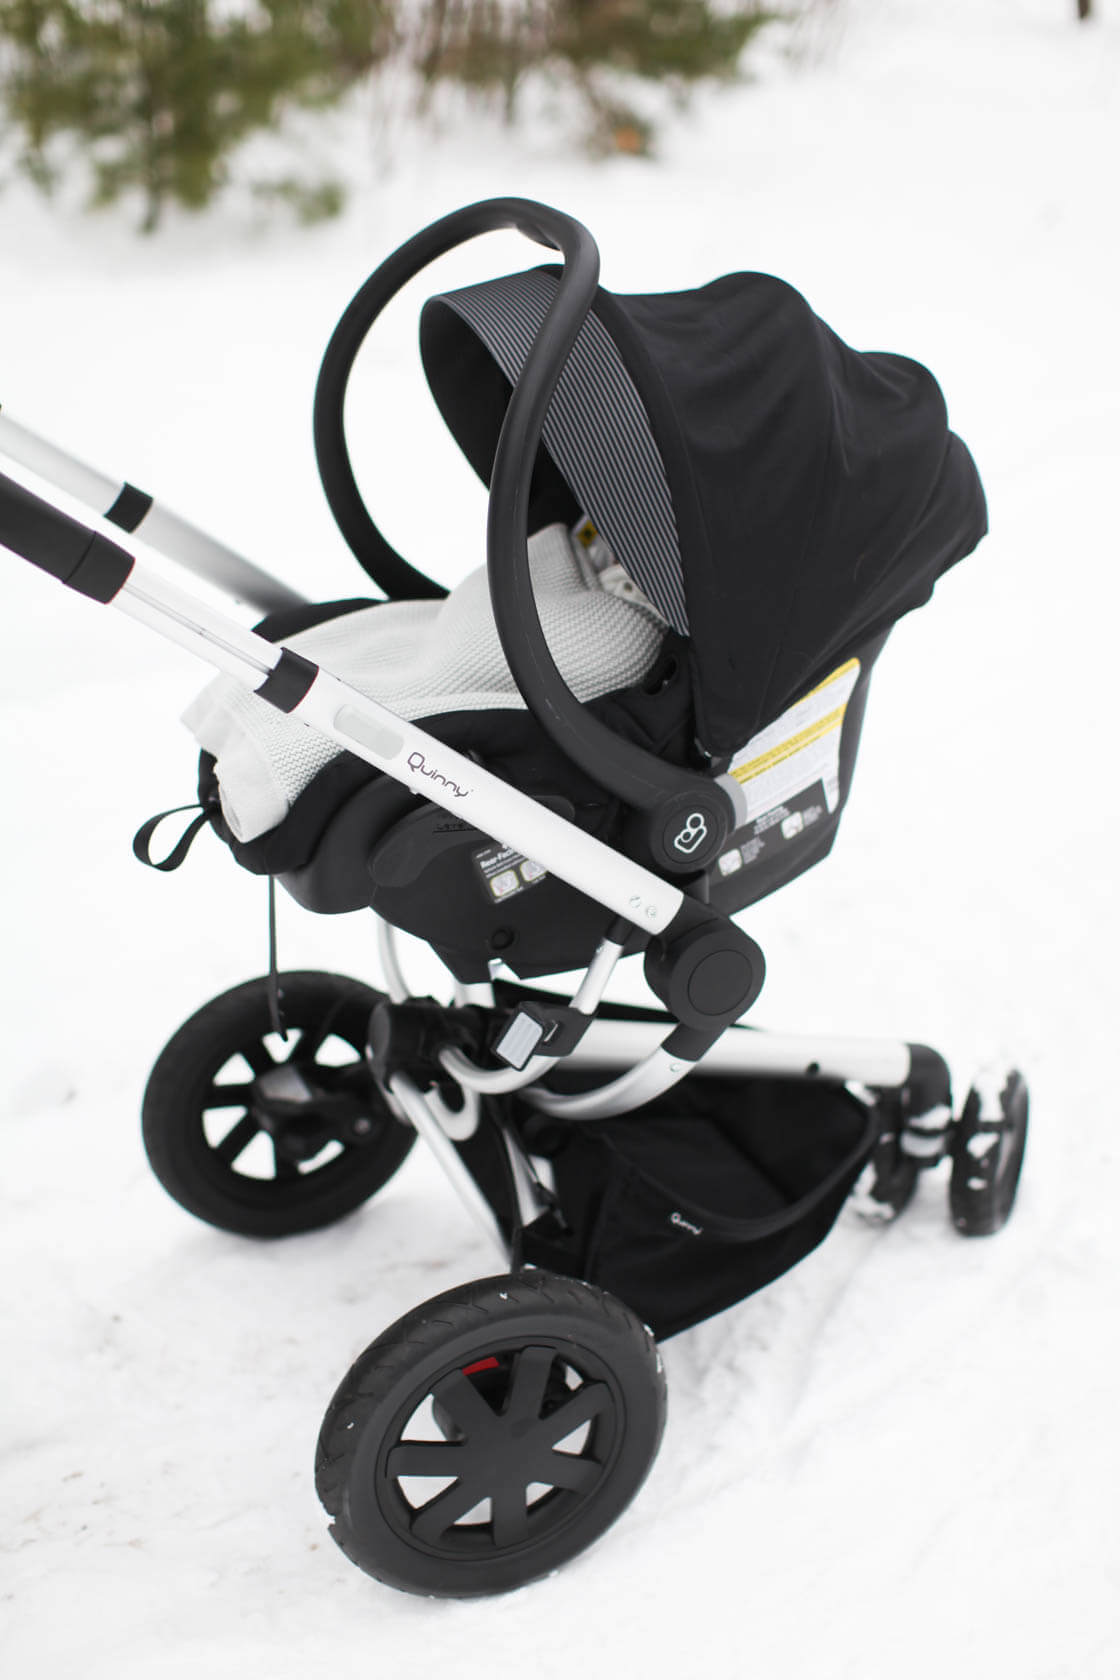 Our Car Seat and Stroller Combo - Samantha Elizabeth